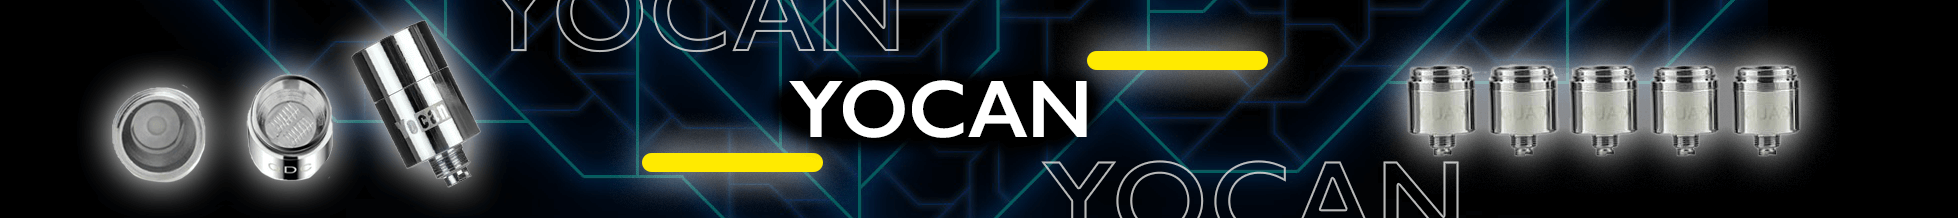 yocan-category-banner.png